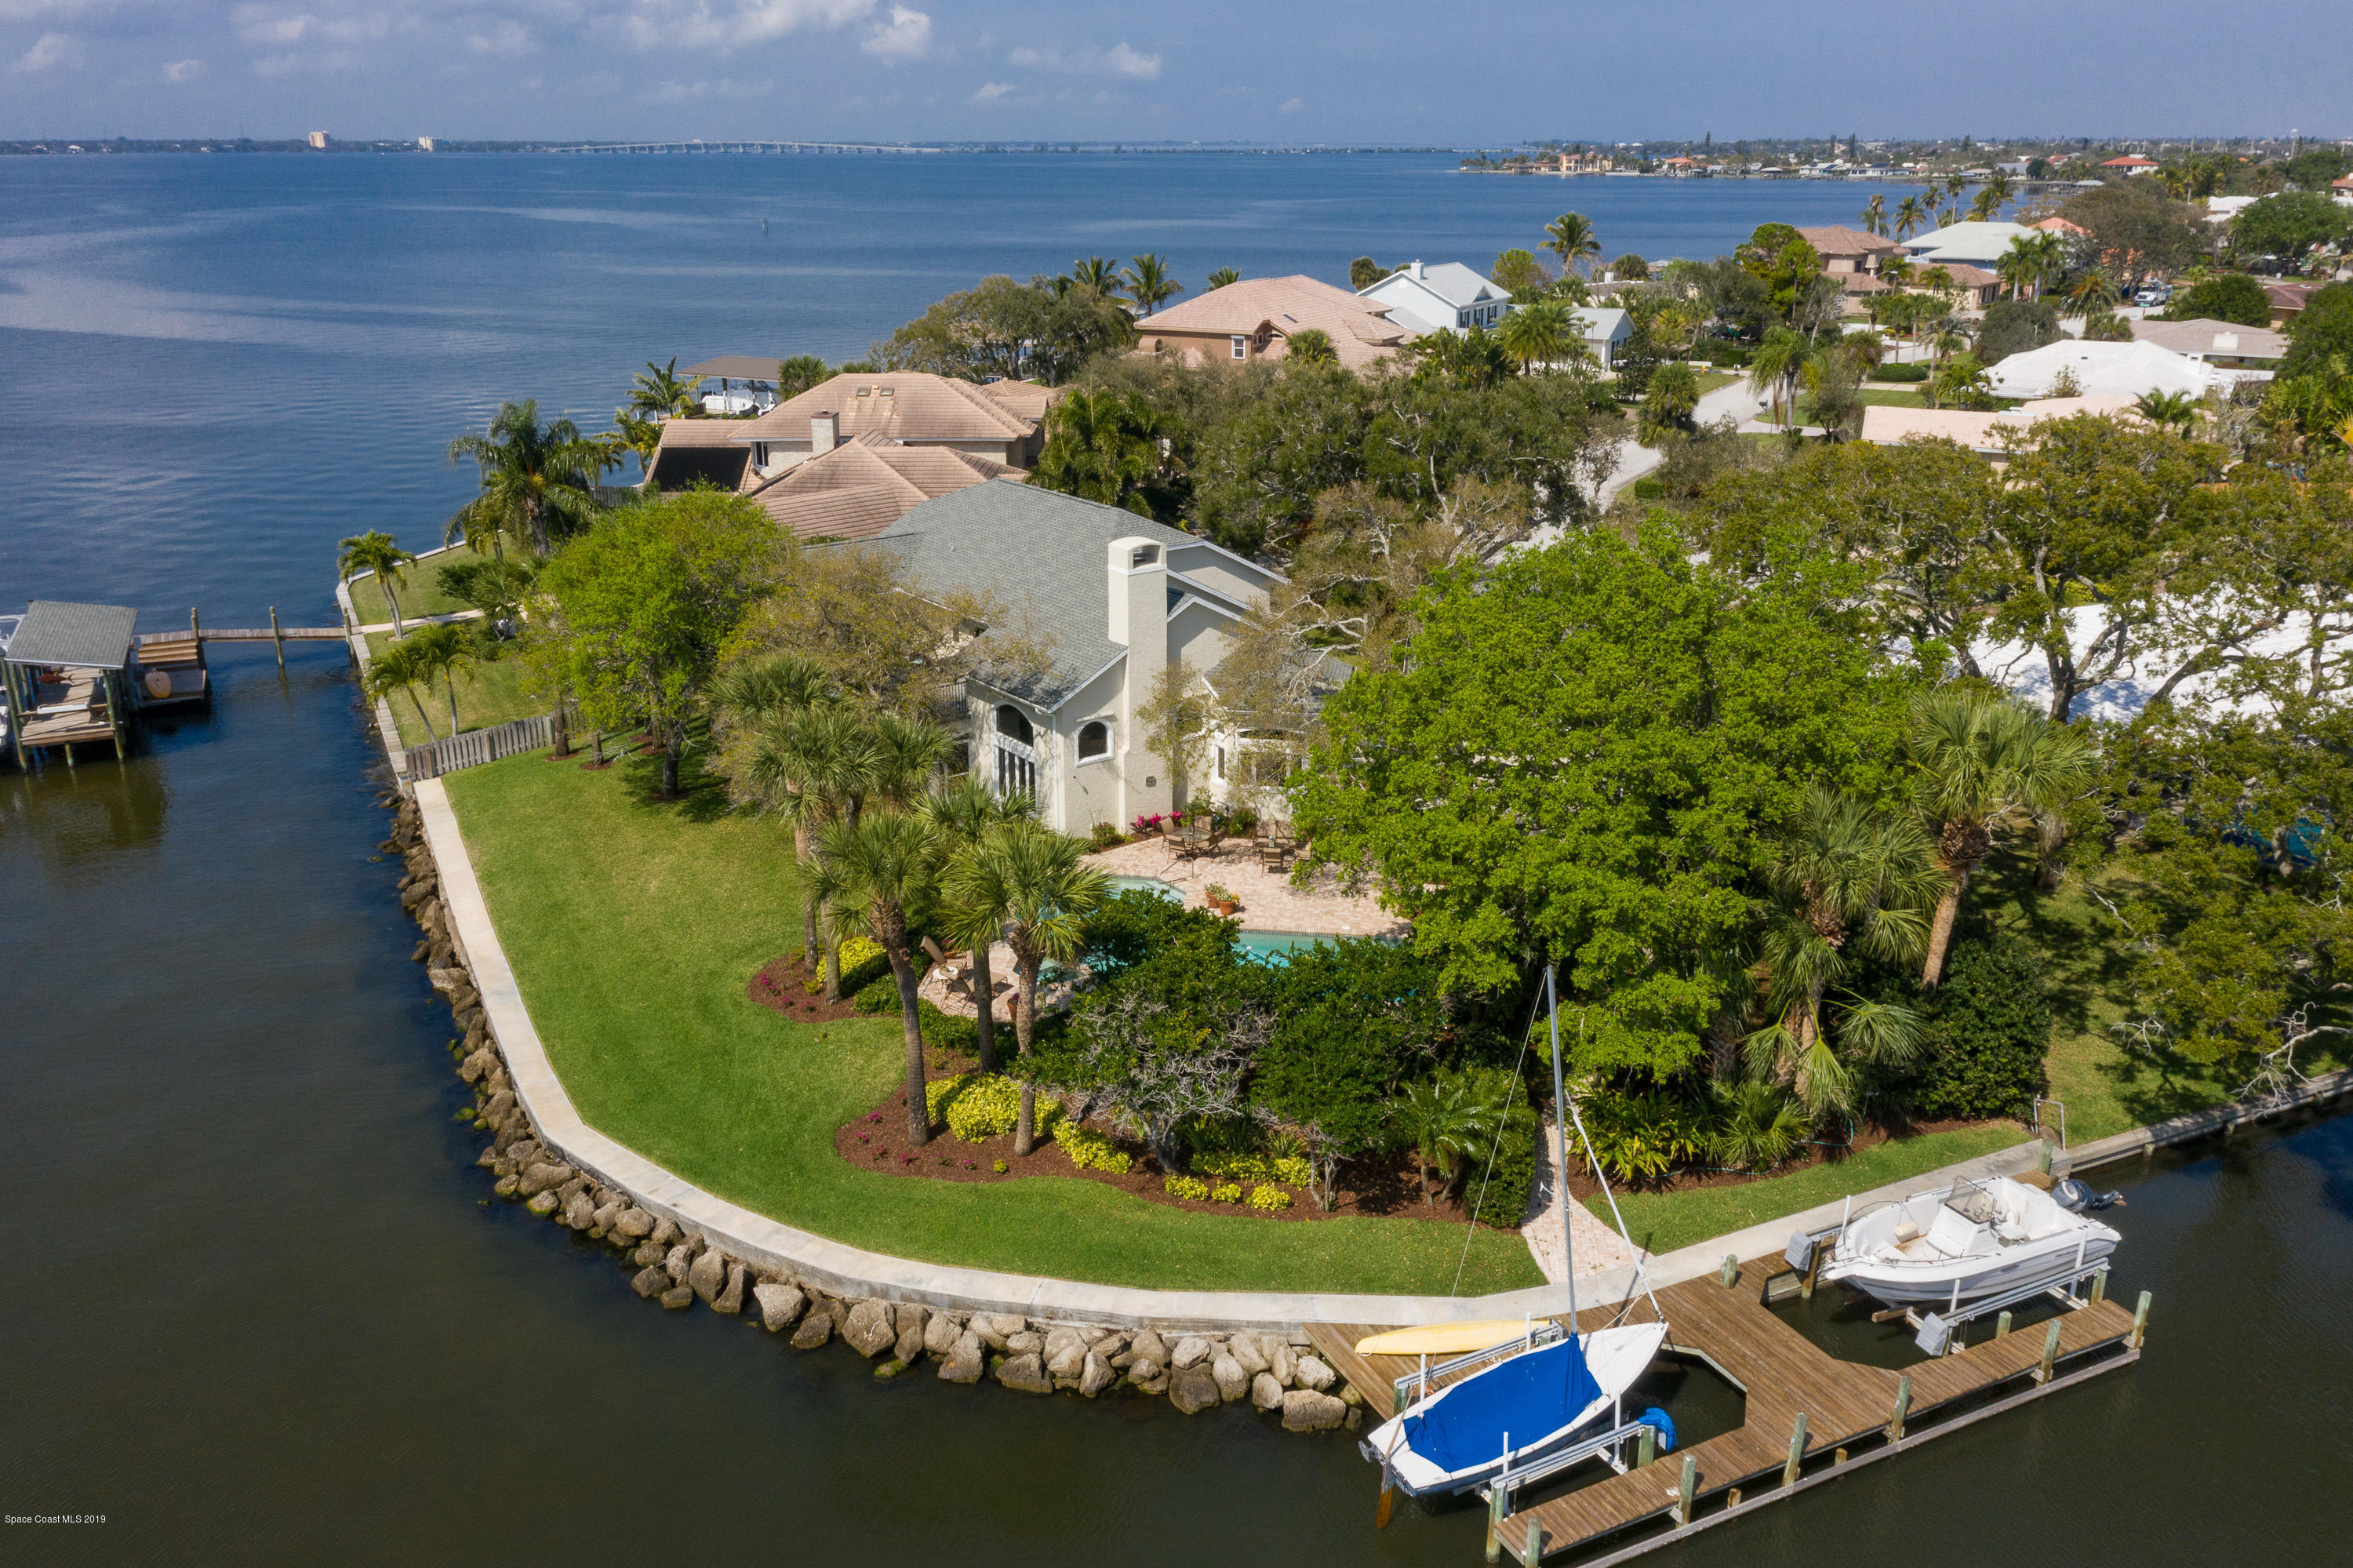 Single Family Home for Sale at 1845 River Shore 1845 River Shore Indialantic, Florida 32903 United States